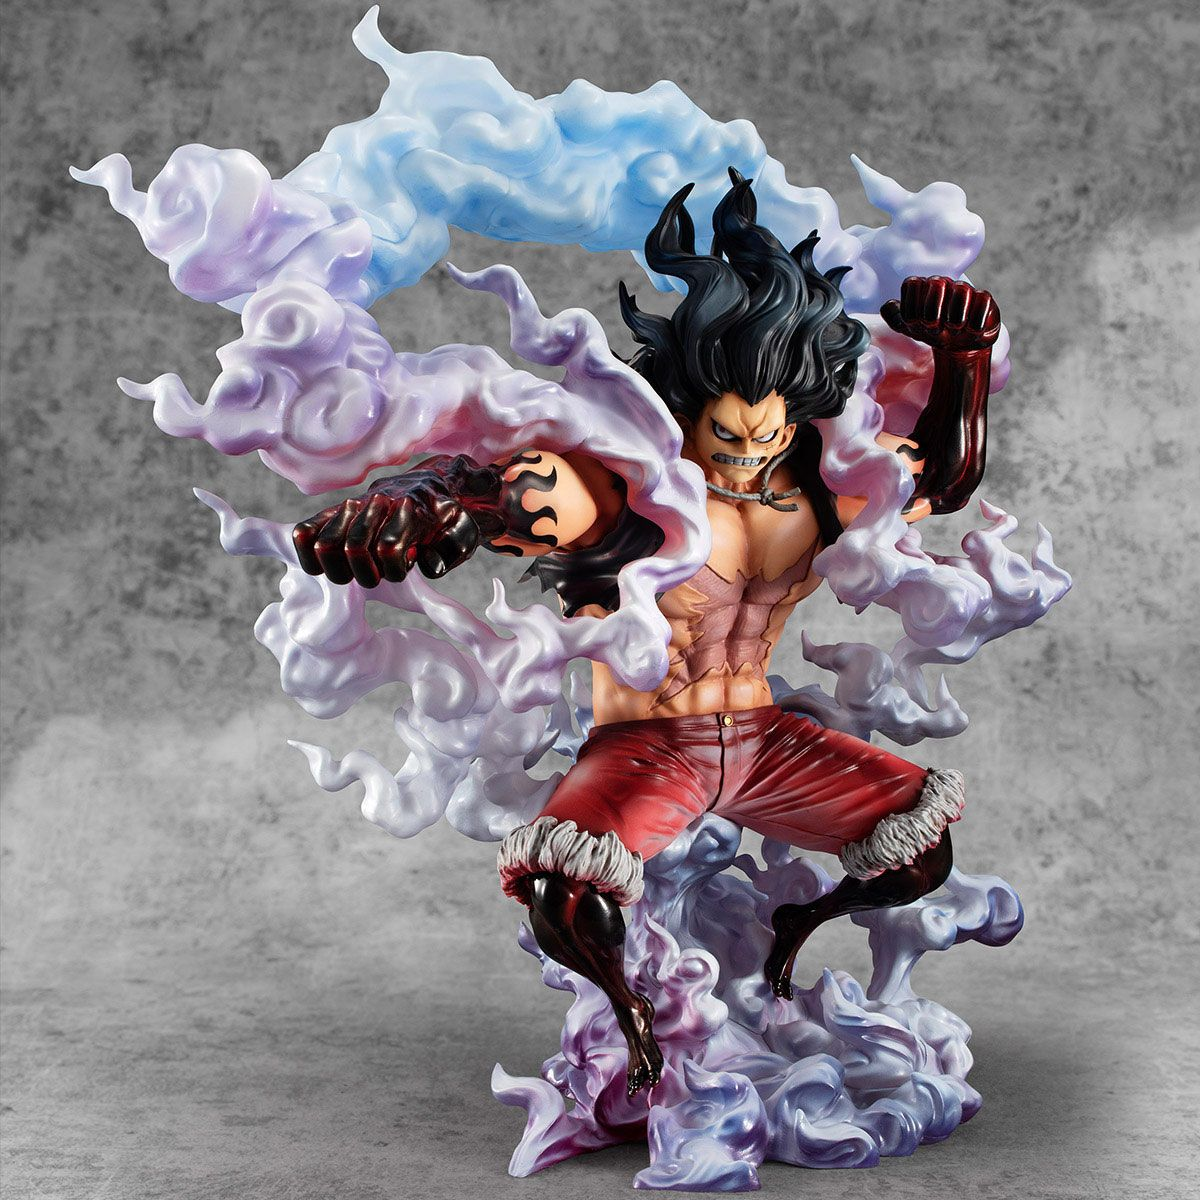 Sa Maximum Monkey D Luffy Gear 4 Snake Man One Piece Excellent Model P O P Pvc 1 8 Statue By Megahouse